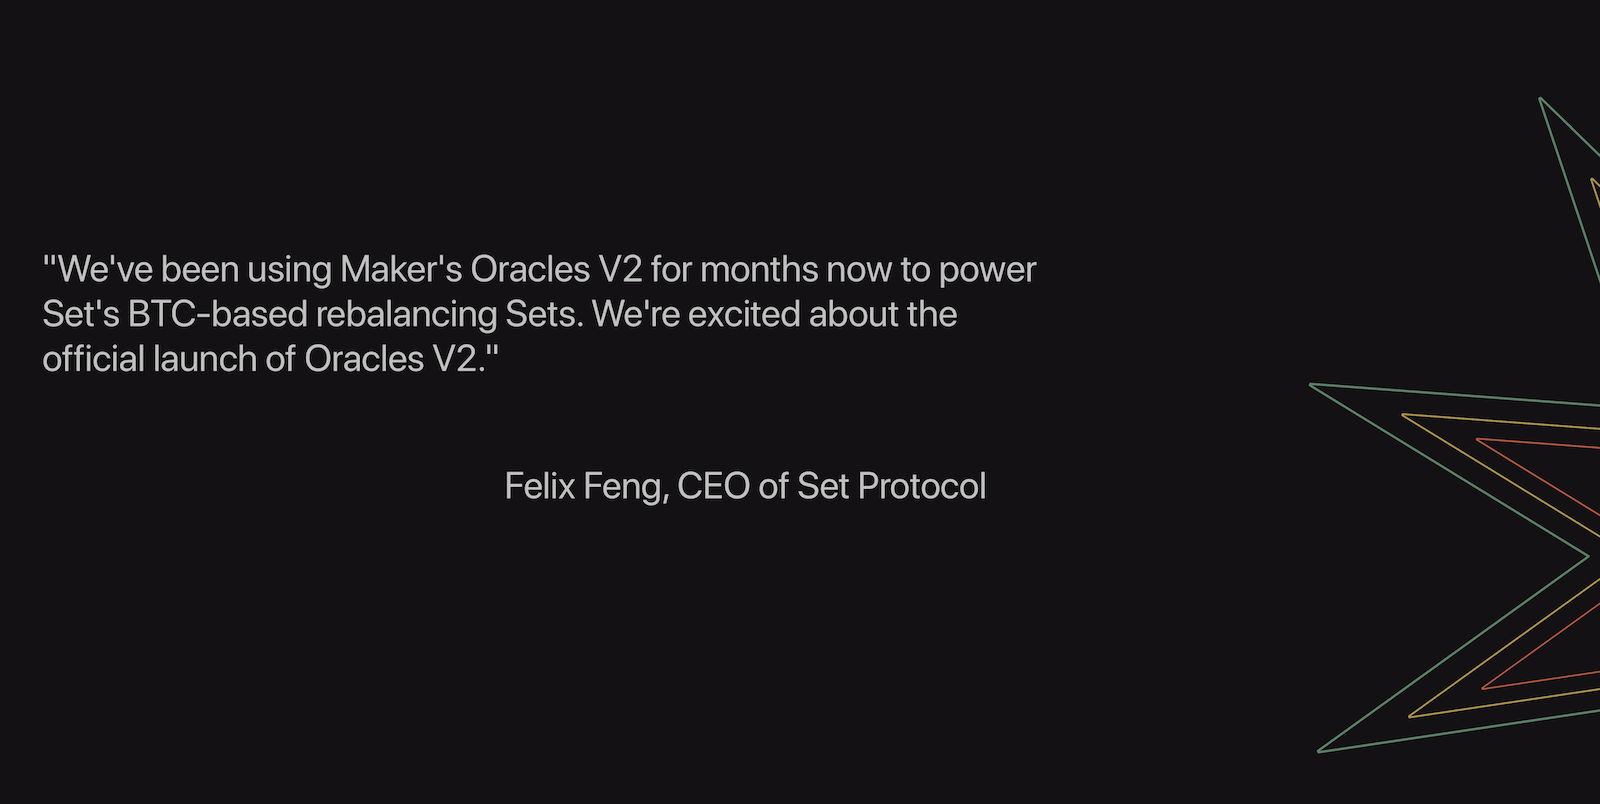 Introducing Oracles V2 and DeFi Feeds